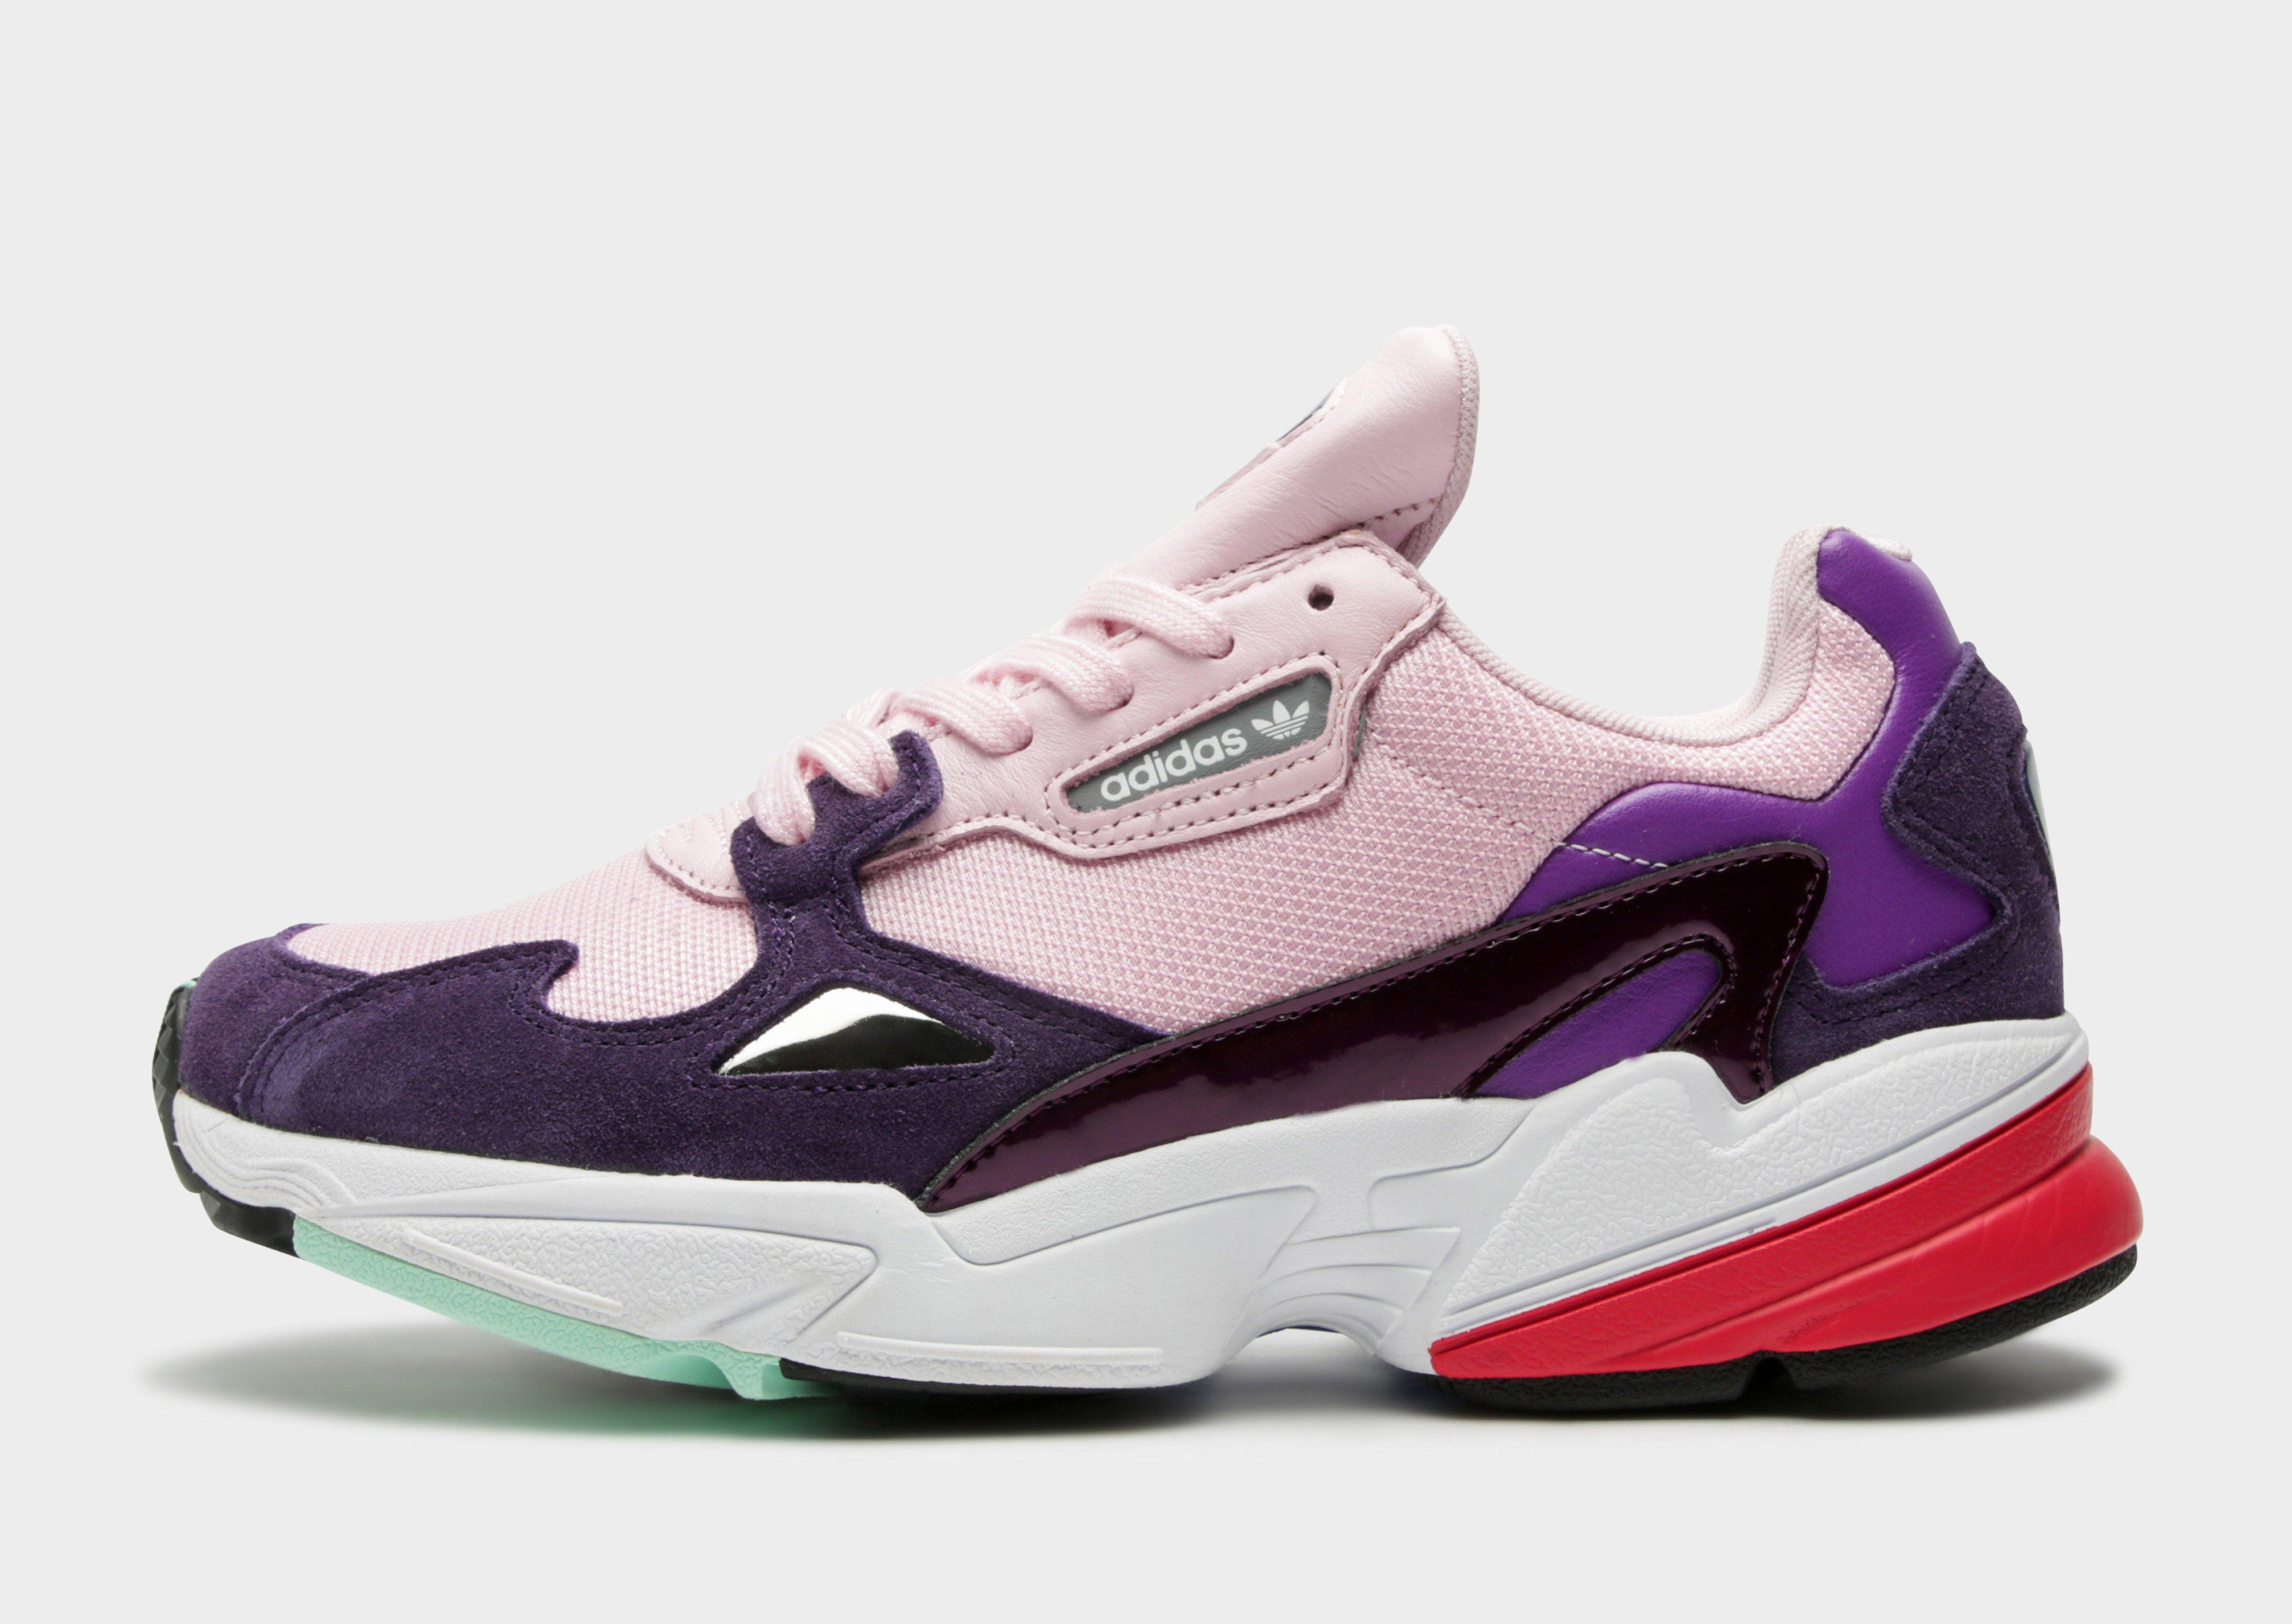 low priced ad19e 27b44 ADIDAS Falcon Shoes  JD Sports